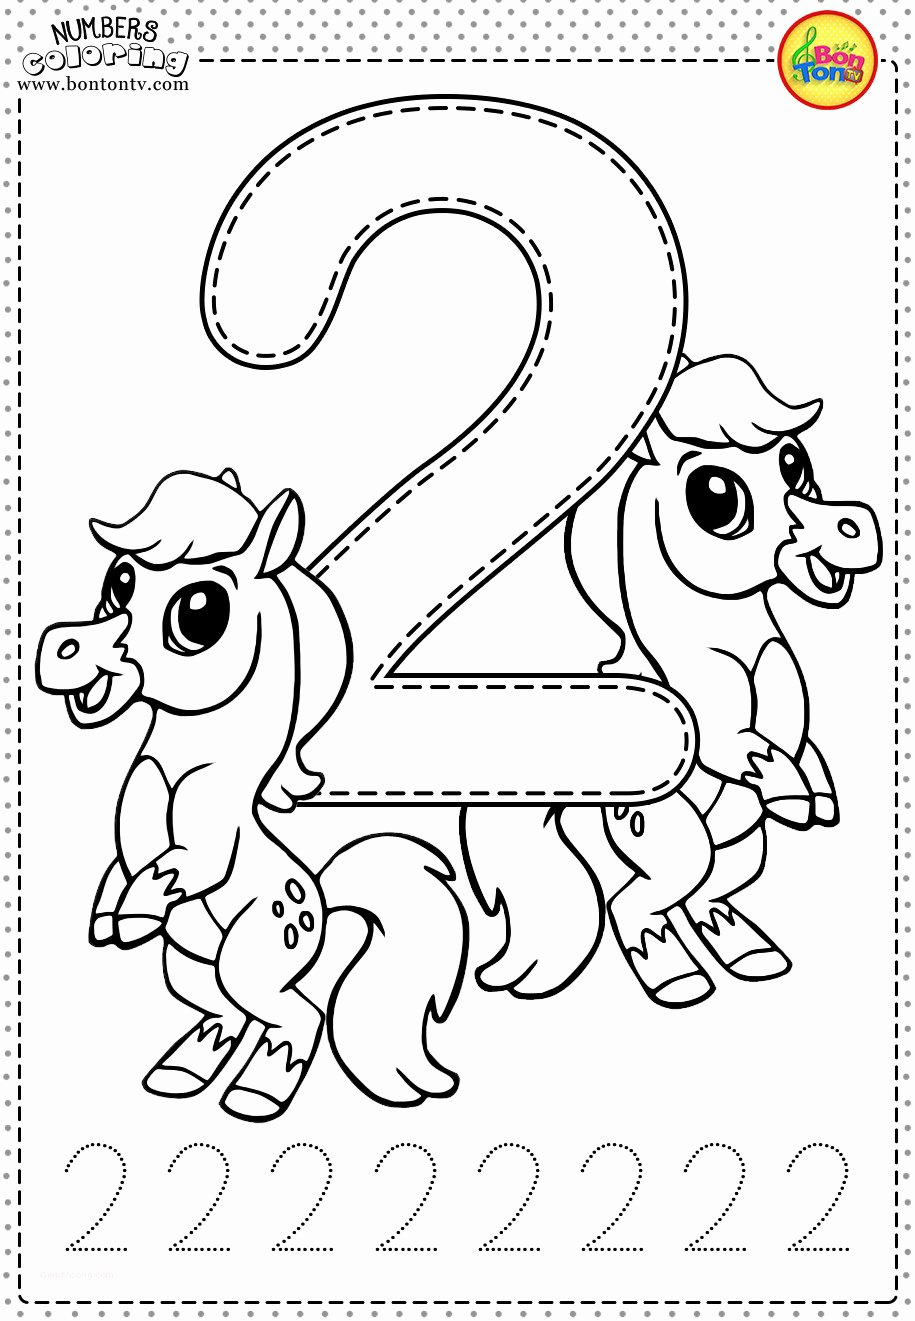 Number Coloring Worksheets for Preschoolers Awesome Printable Number Coloring Pages Book for toddlers Fresh